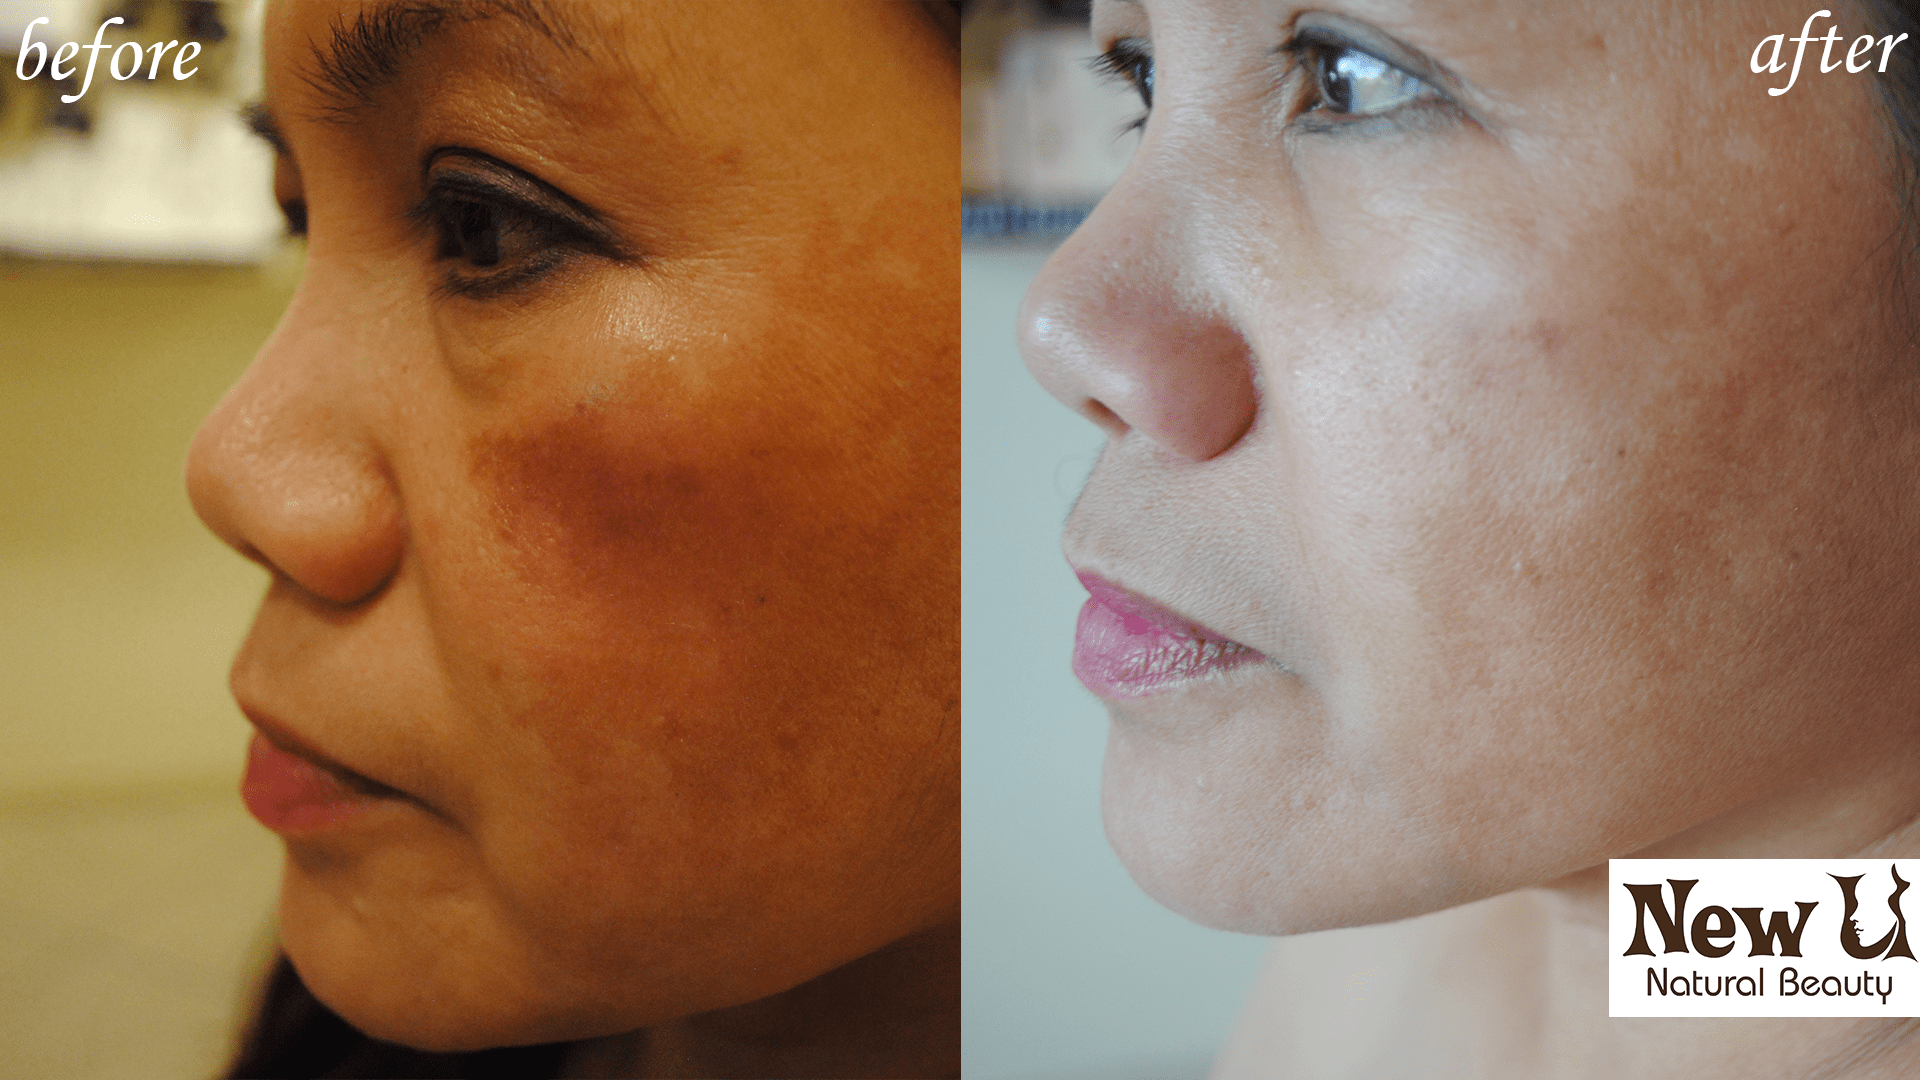 Organic Skin Care 2 Las Vegas Before and After